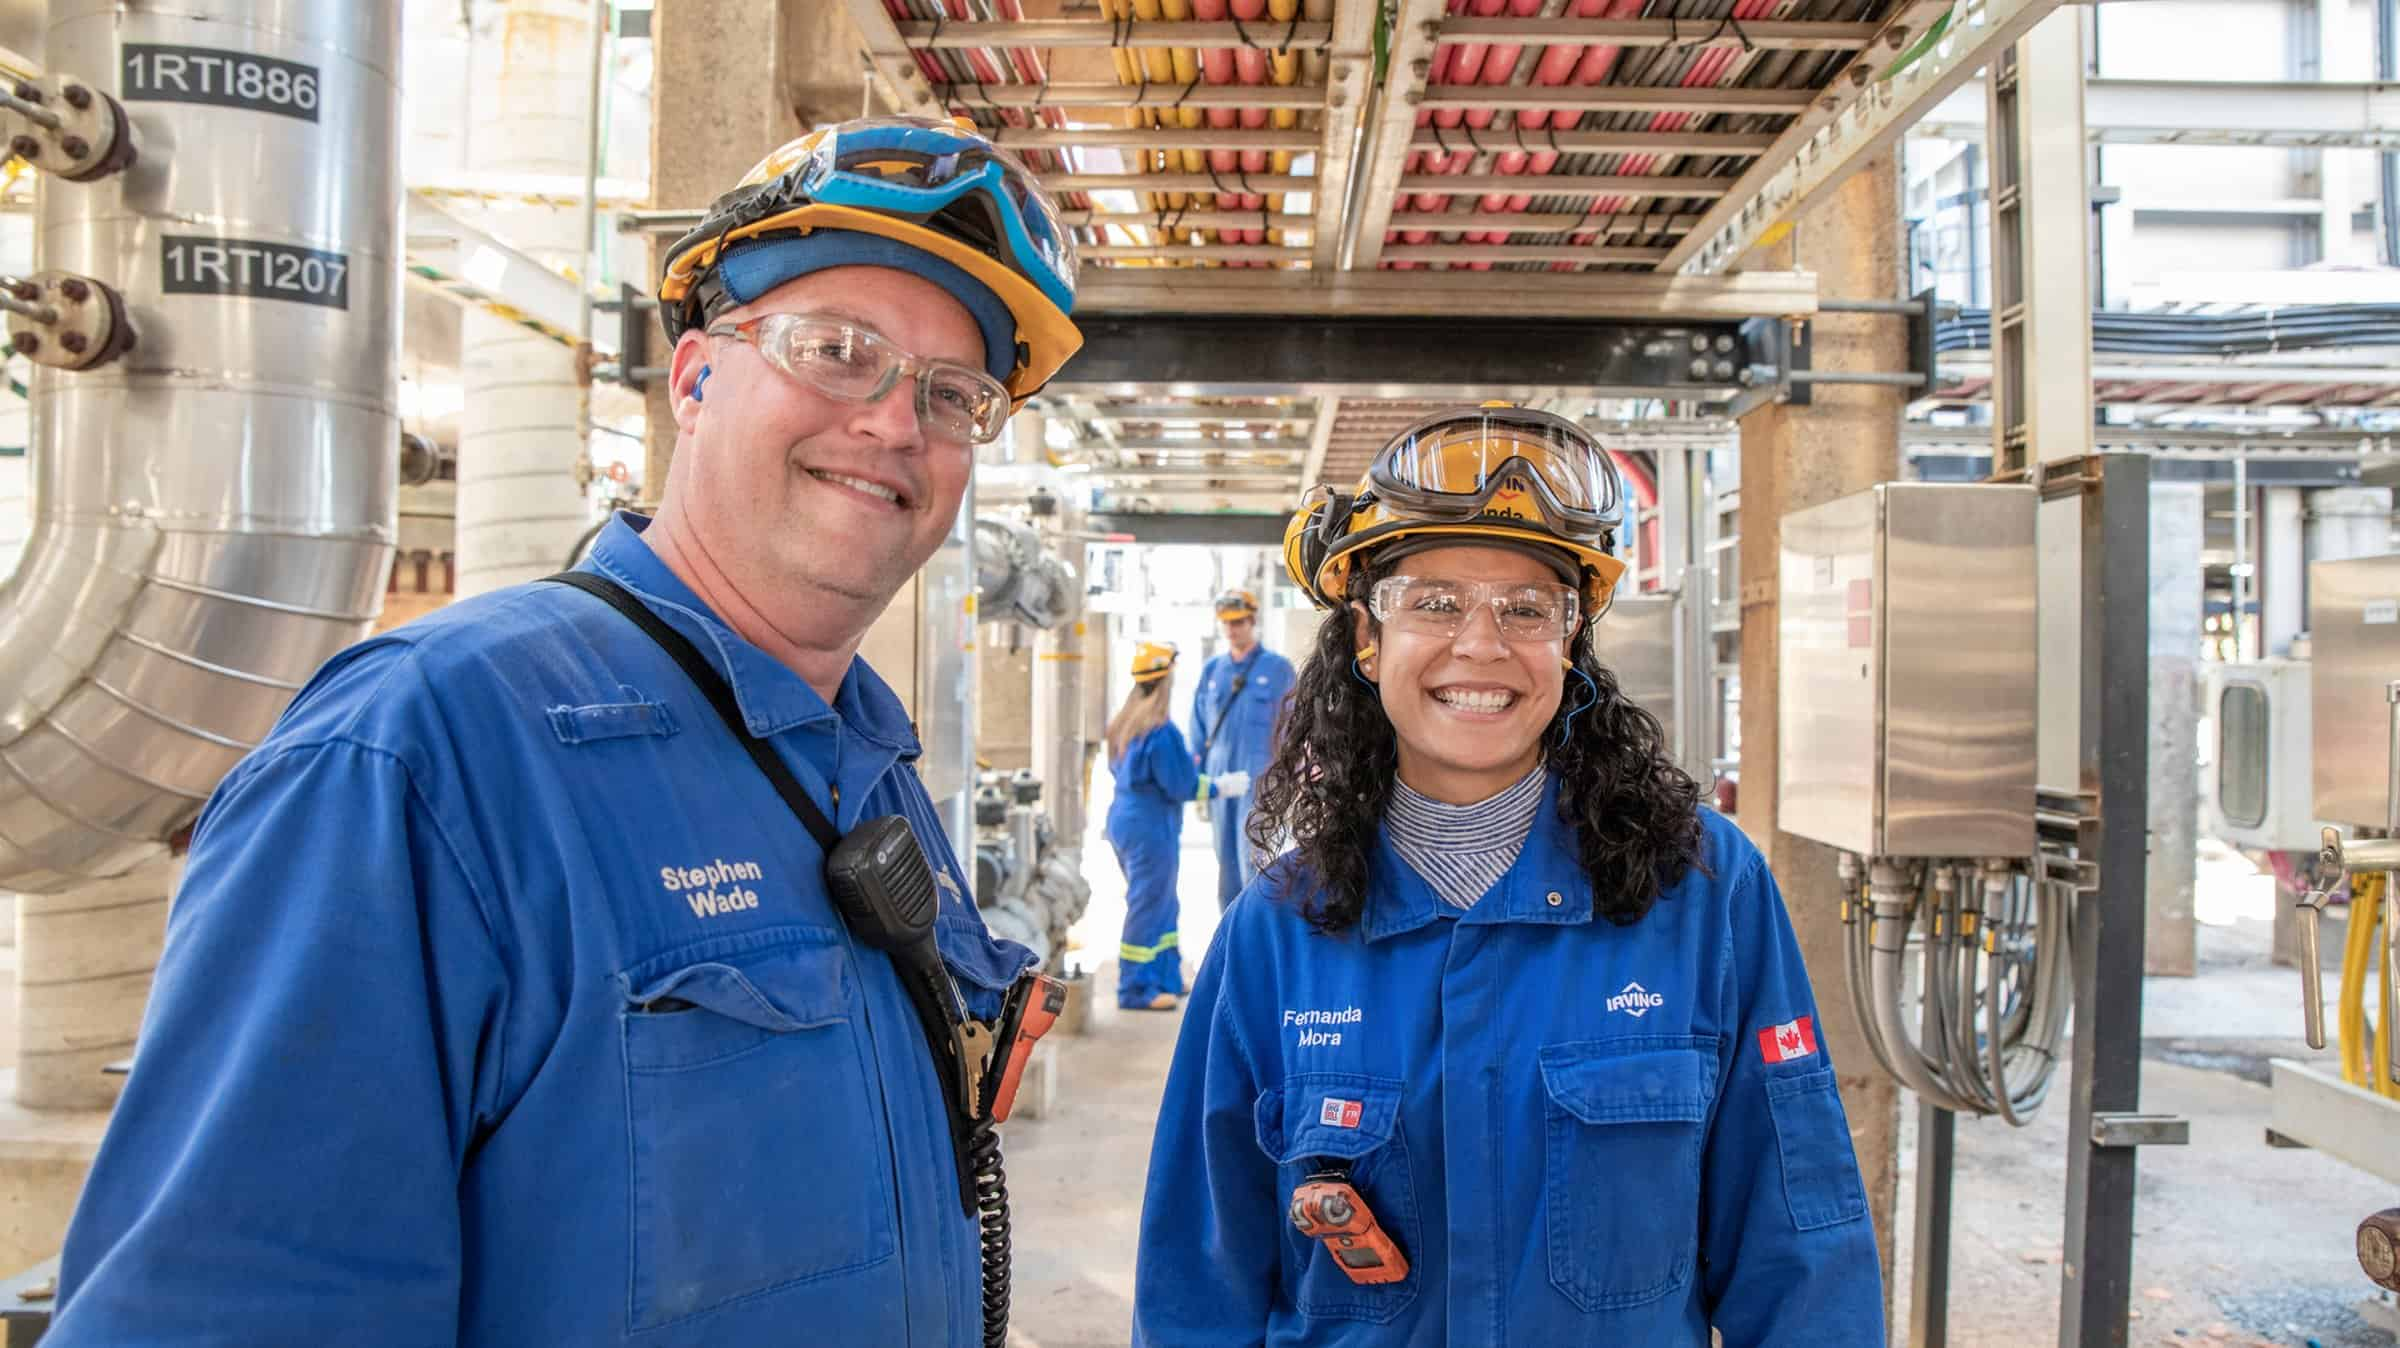 Over 50 Jobs Are Available @ Irving Oil, Apply Today & Get Hired – October 2020 Job Postings